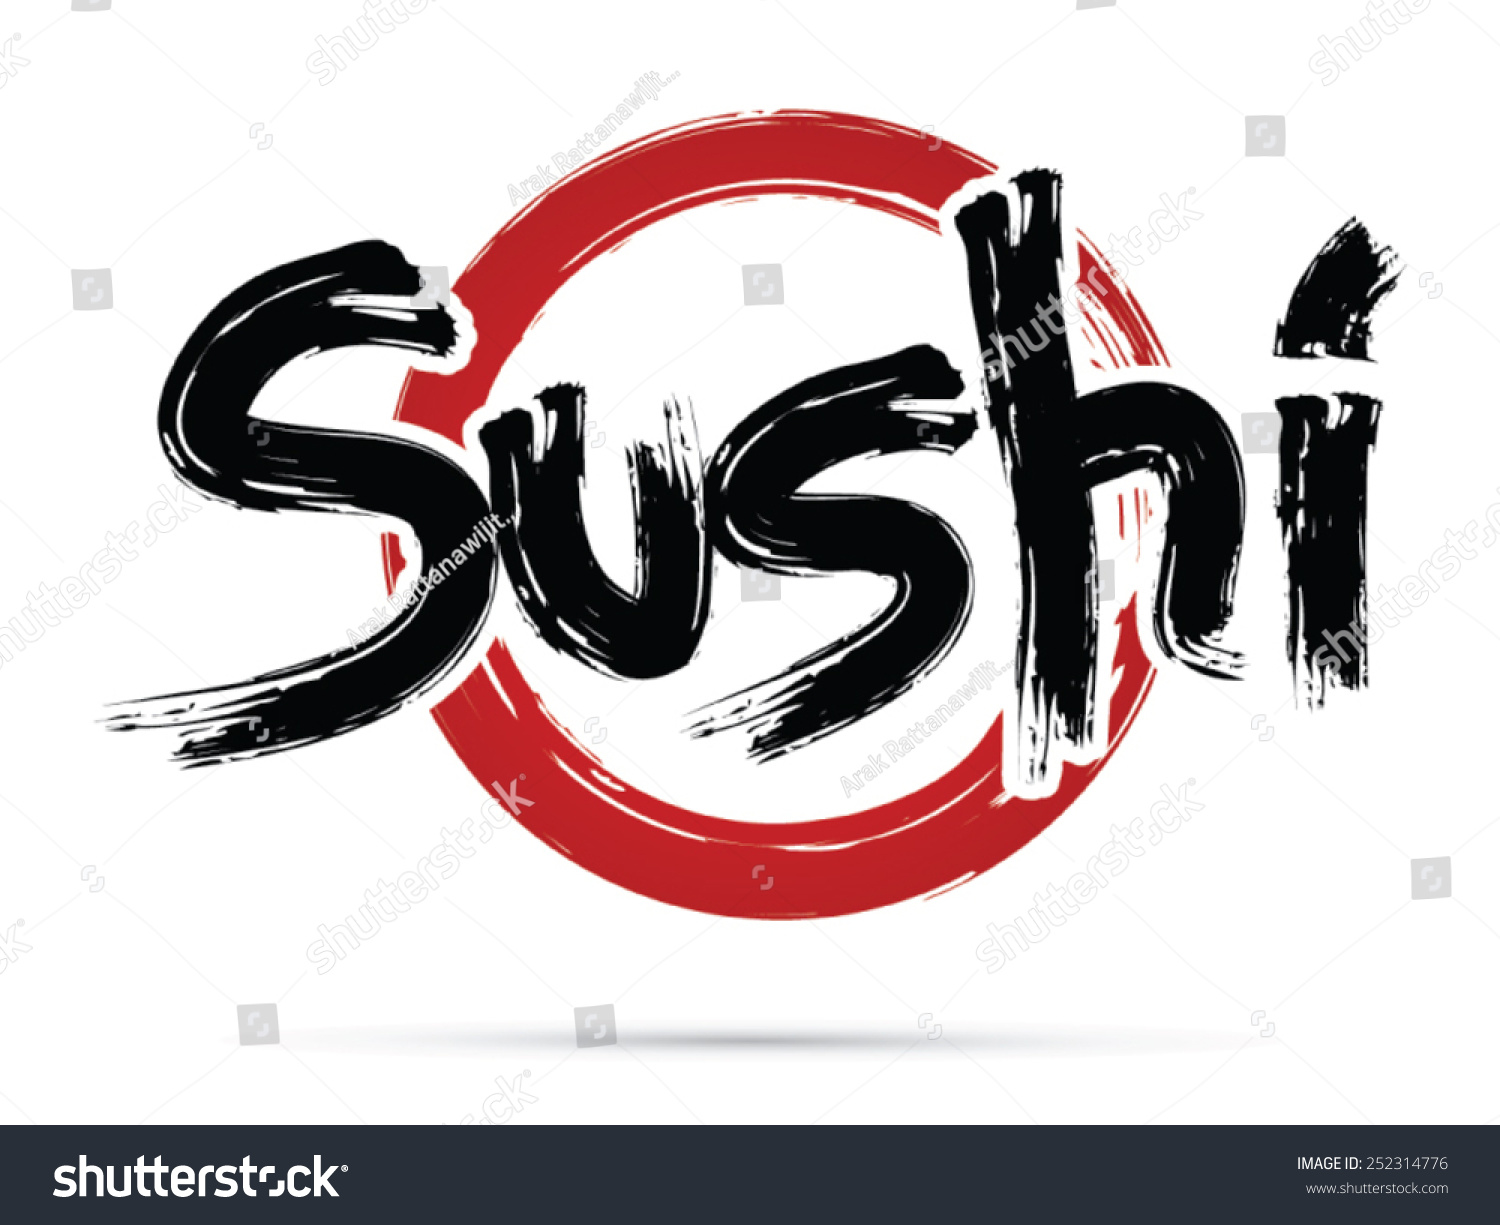 Sushi text design using freestyle grunge stock vector 252314776 sushi text design using freestyle grunge brush japanese restaurant logo symbol buycottarizona Image collections